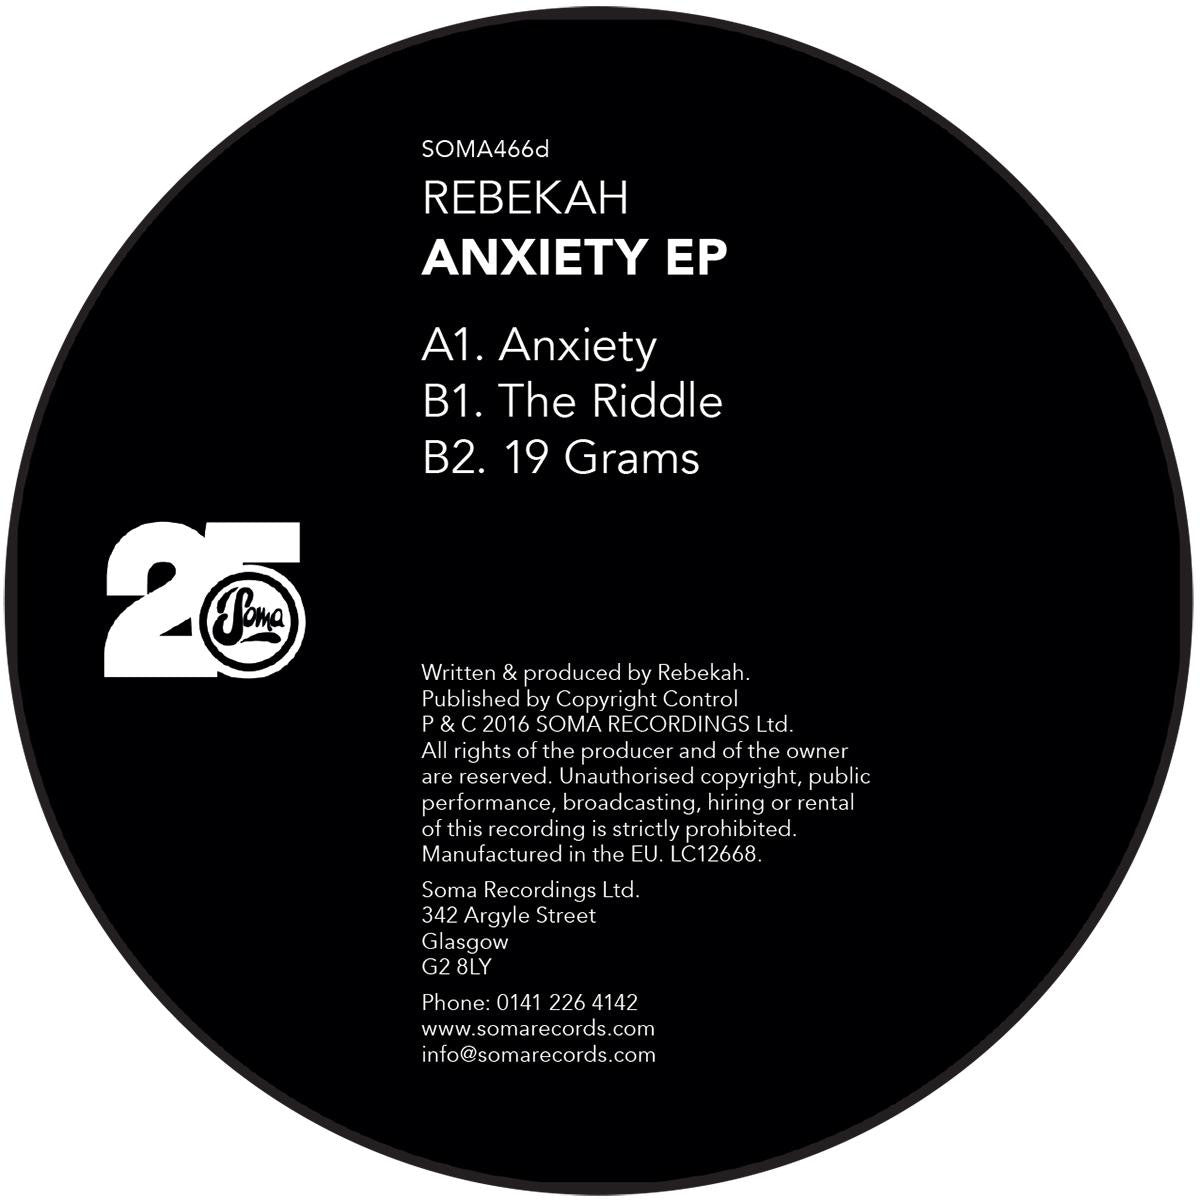 Rebekah - Anxiety , Vinyl - Soma Quality Recordings, Unearthed Sounds